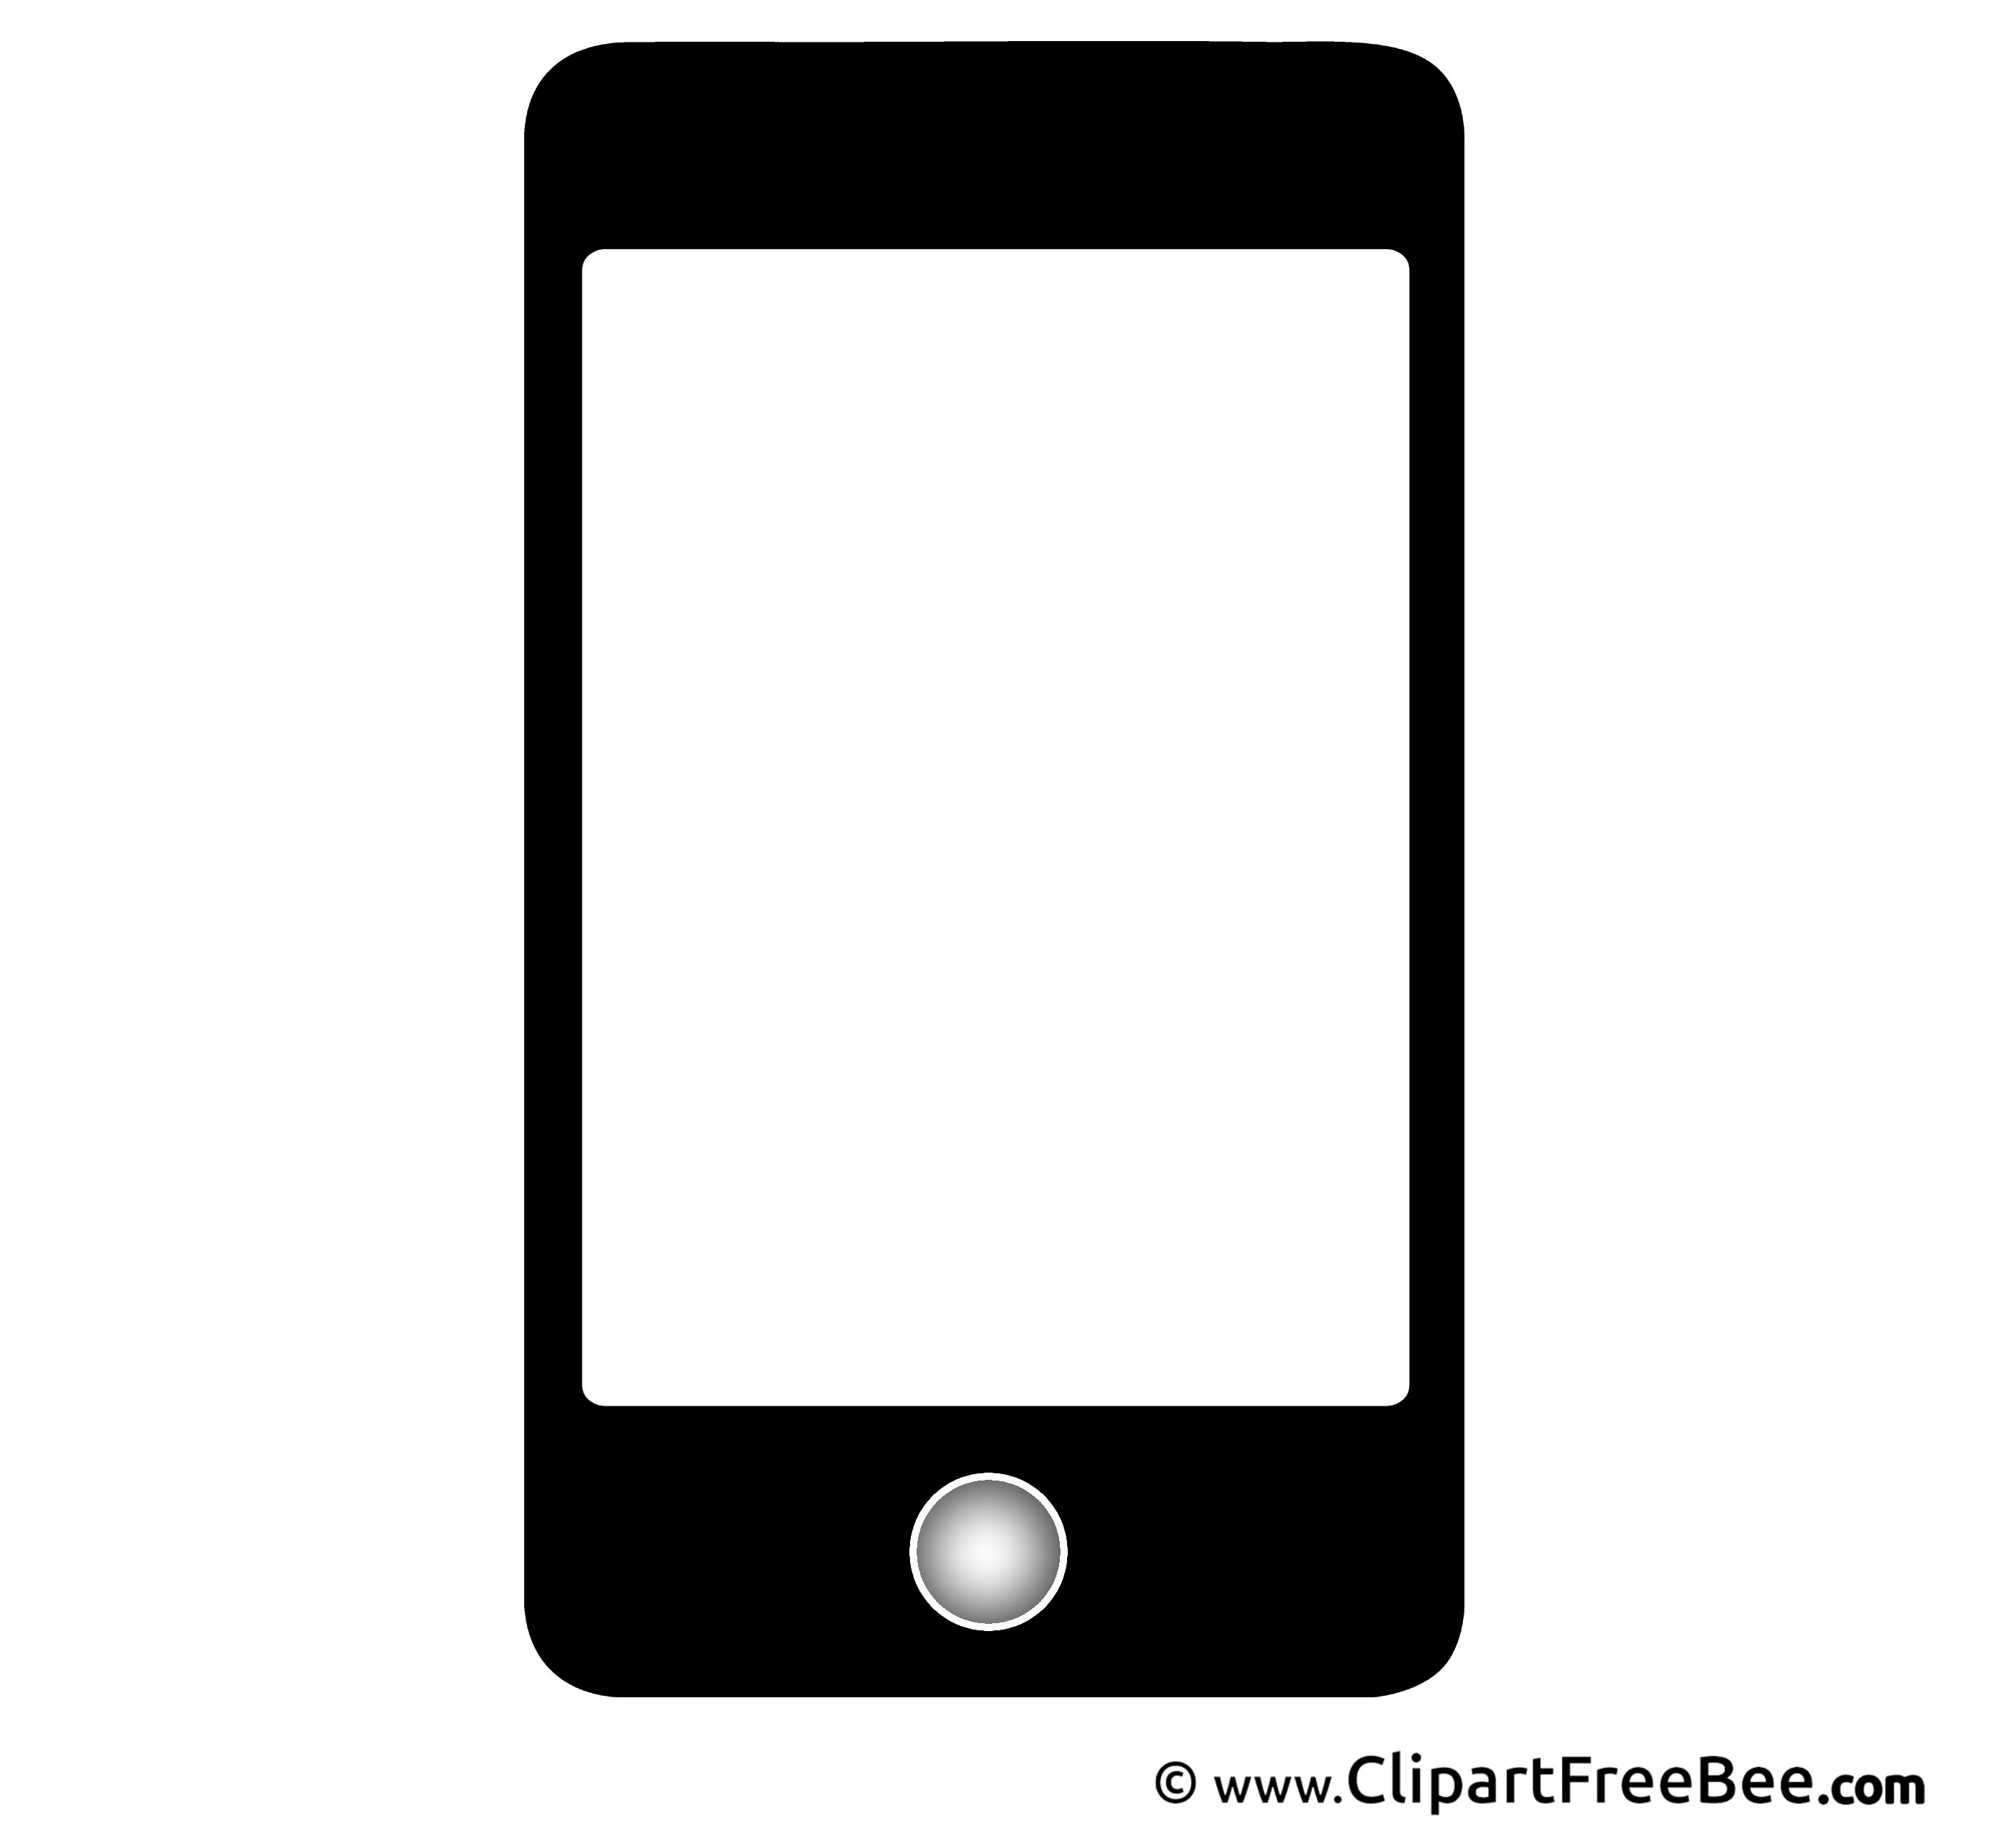 Smartphone Icons Phone Computer Iphone Android PNG Image